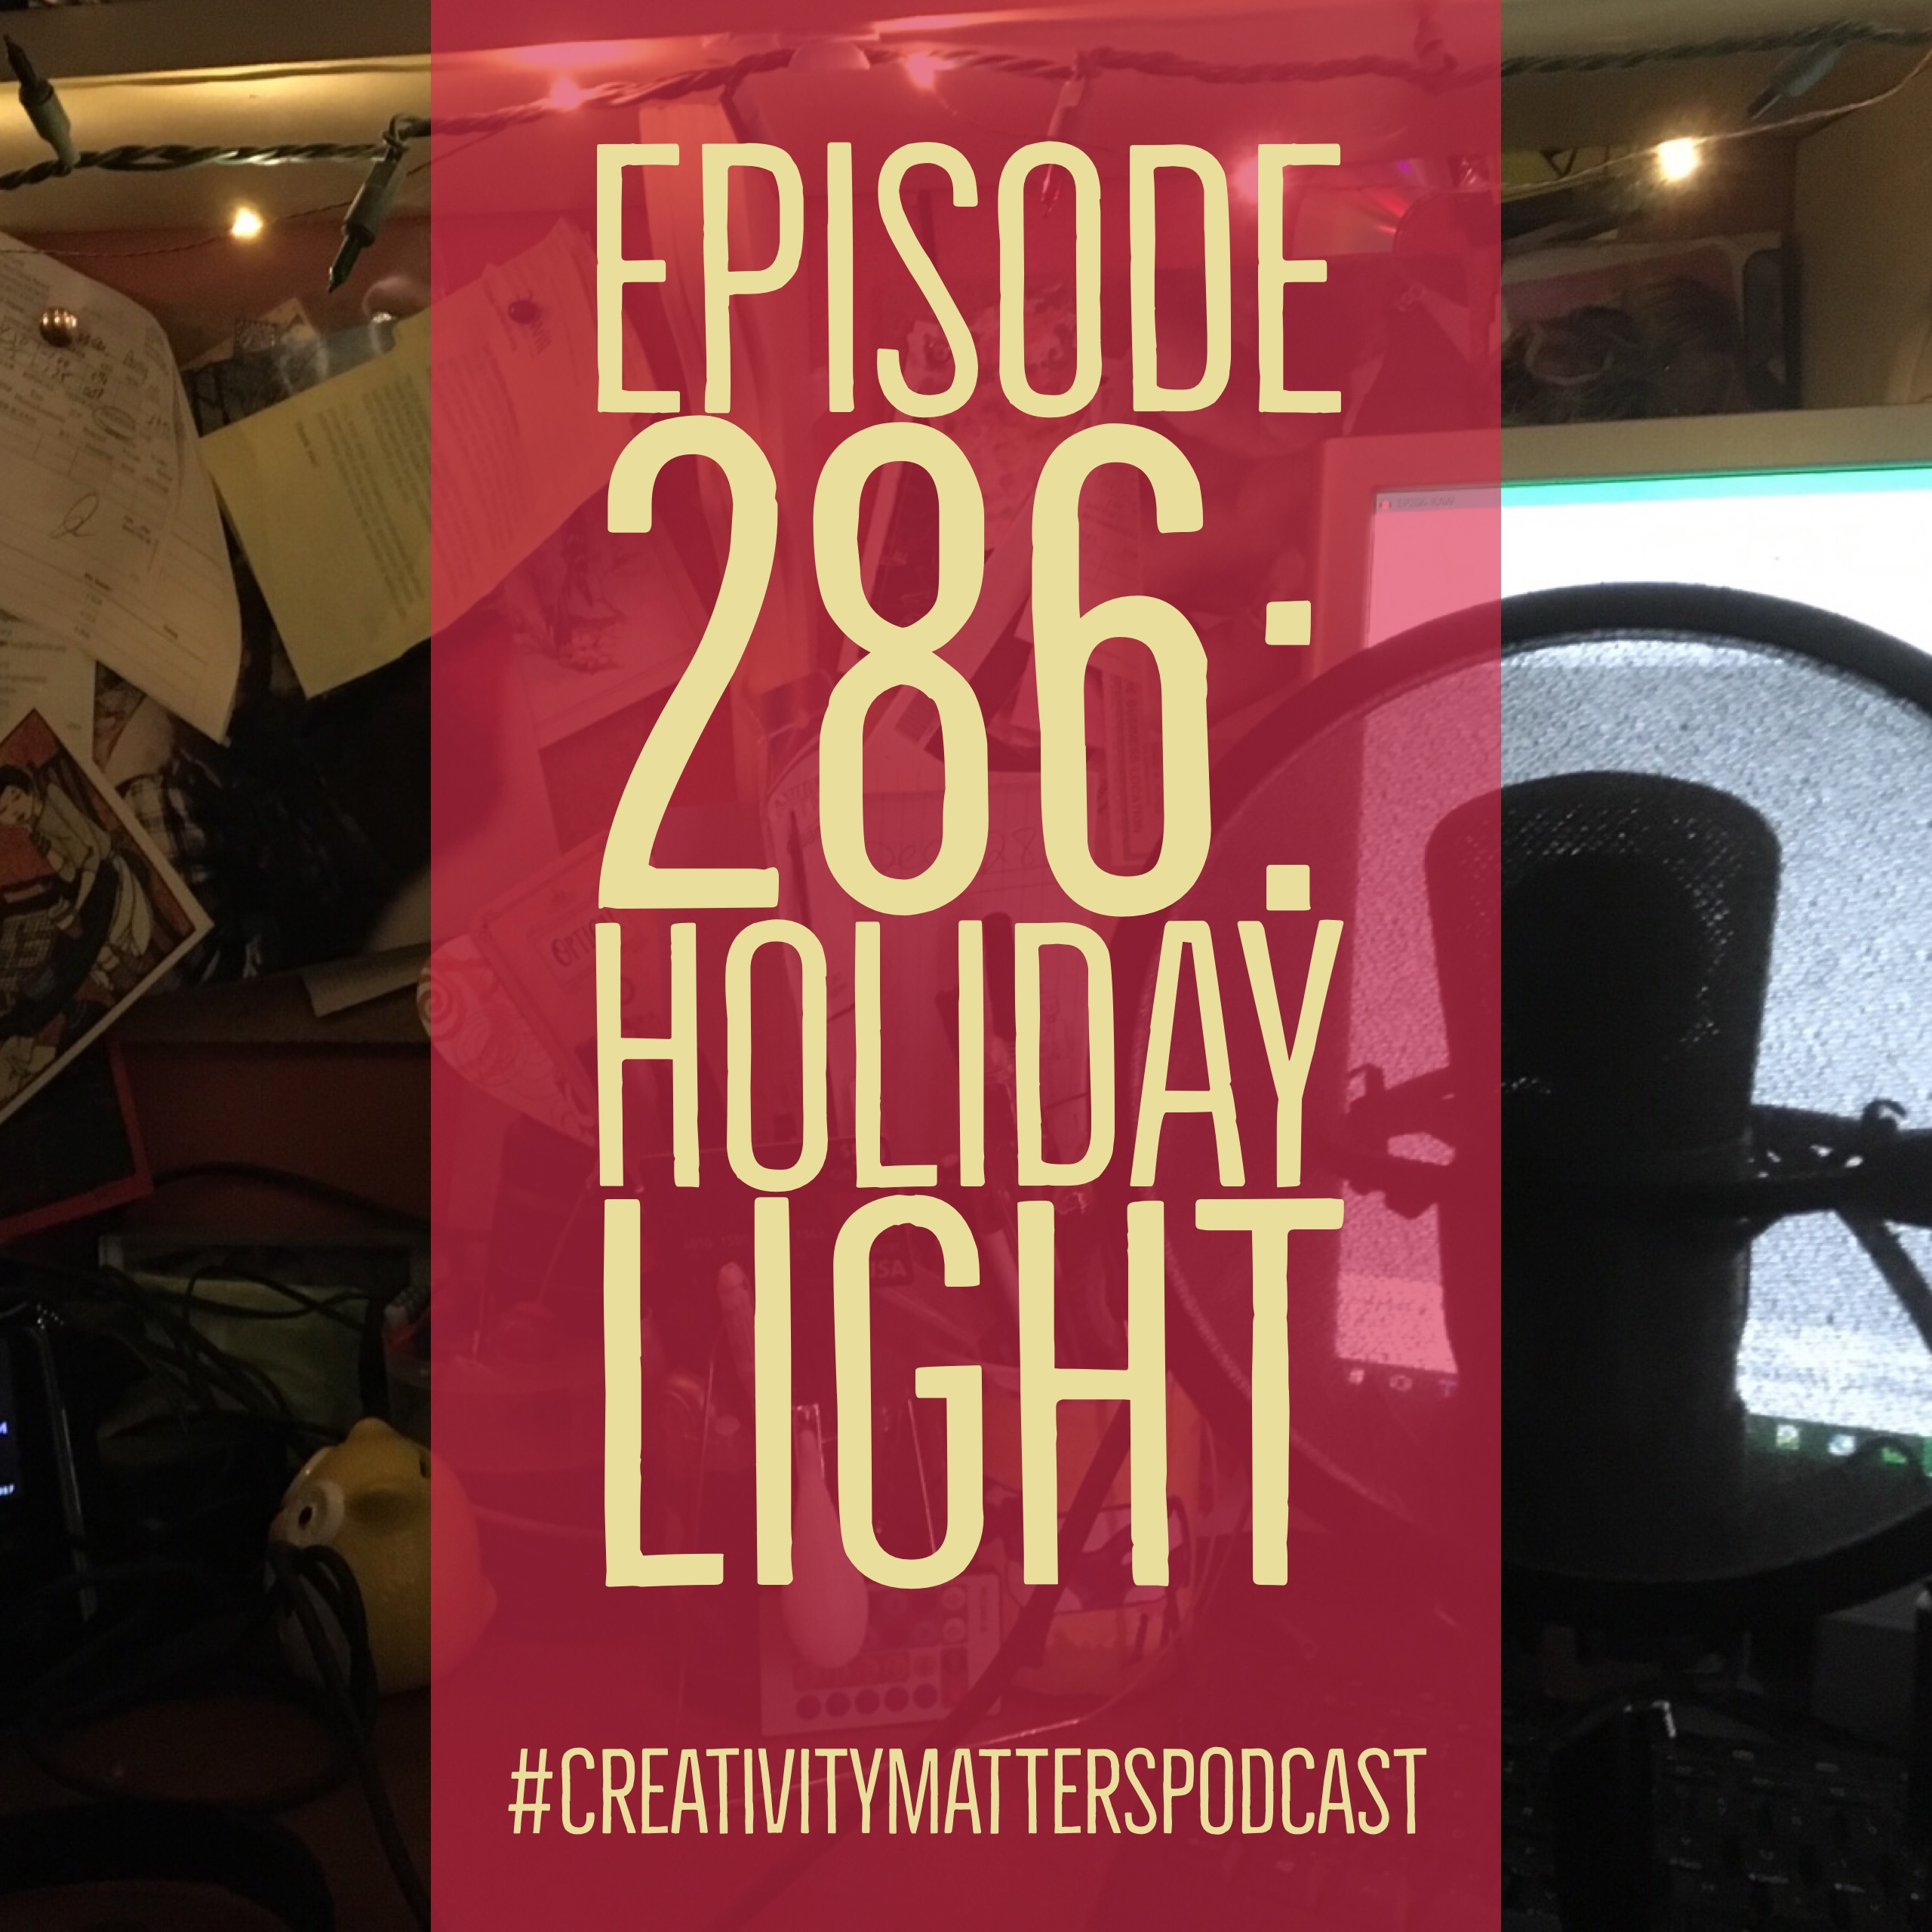 Episode 286: Holiday Light